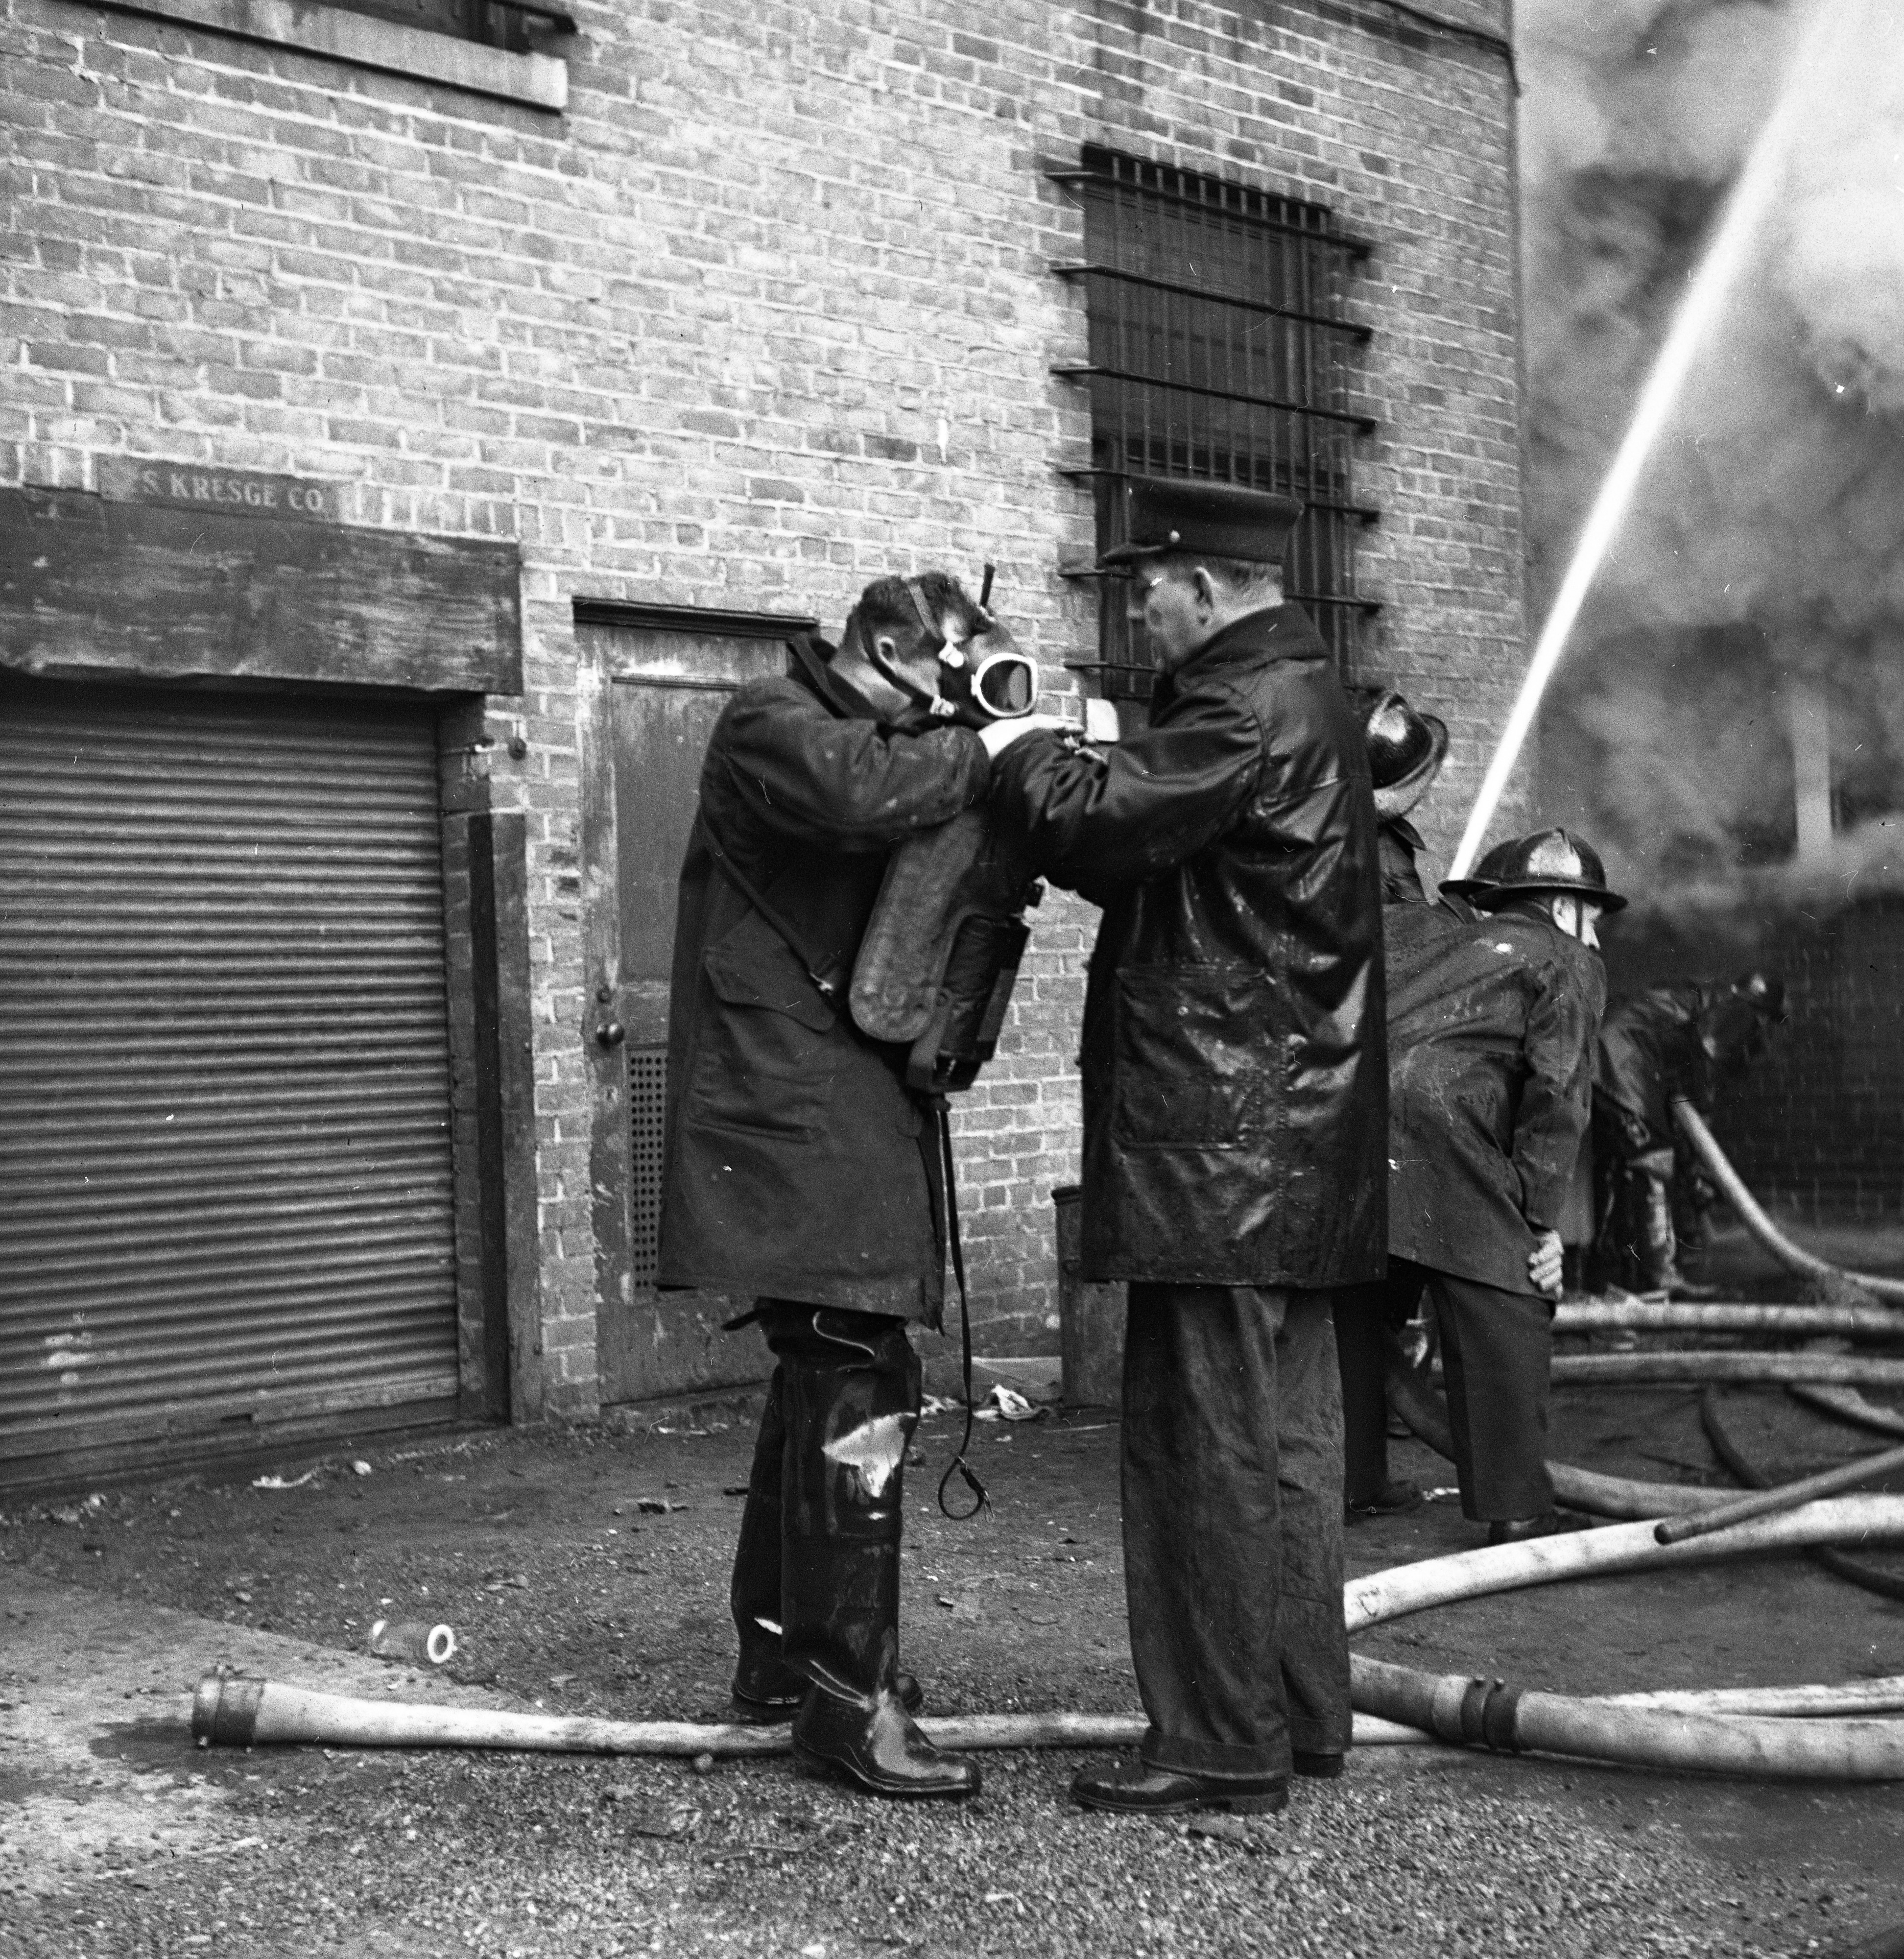 Ann Arbor Fire Department Dons Protective Gear In Battling Wild & Co. Fire On State St, December 1947 image